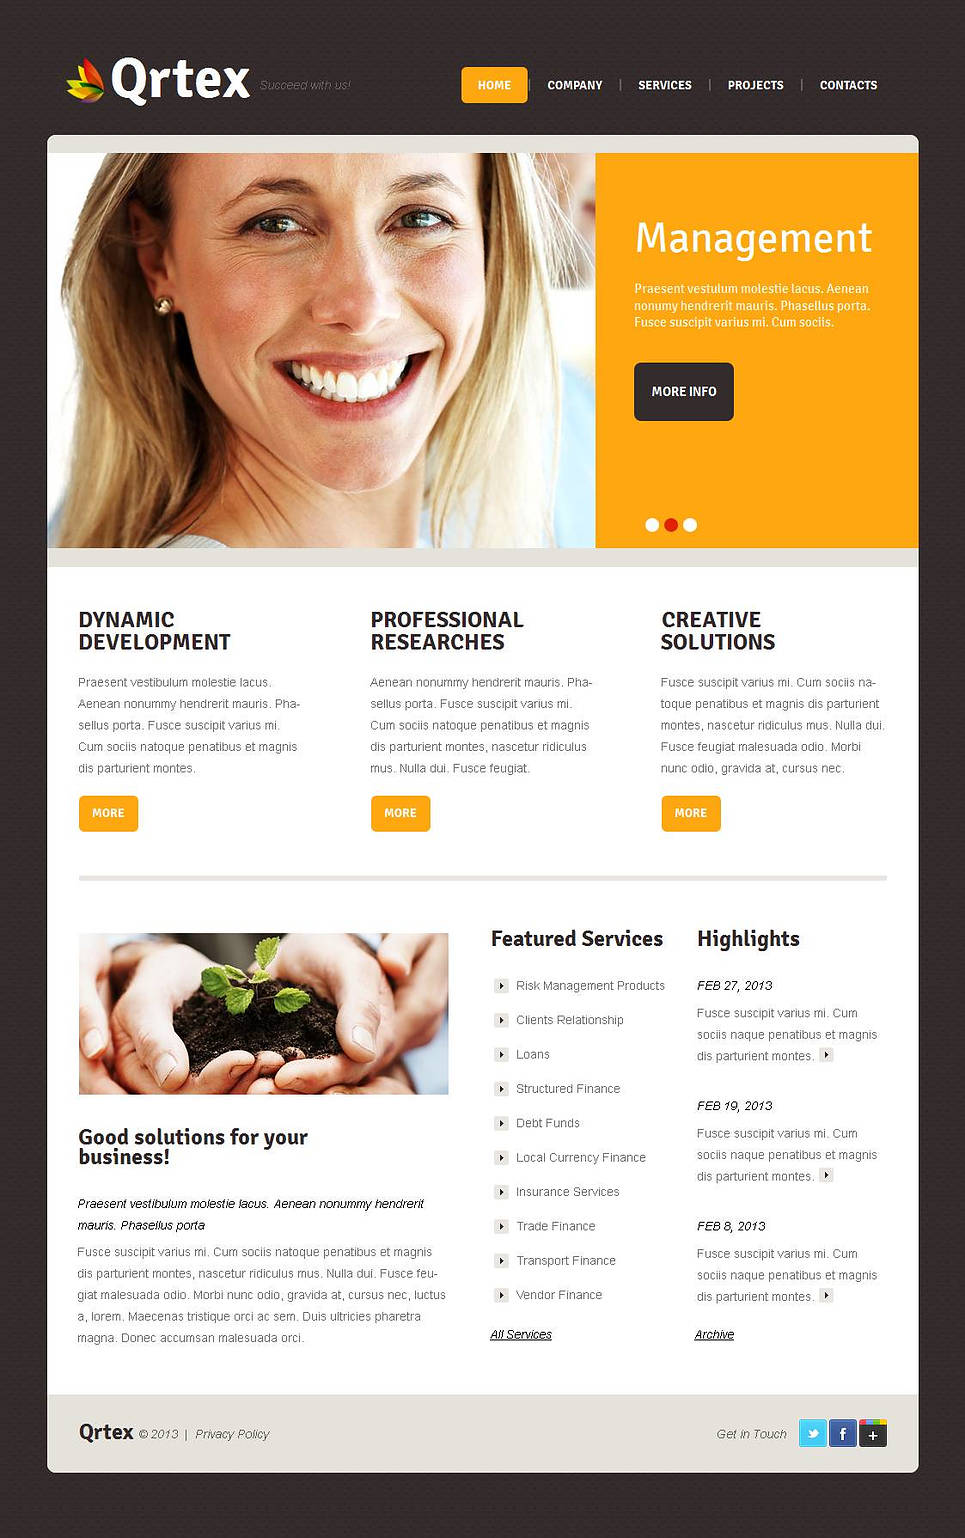 Management Company Website Template with Brown Background - image